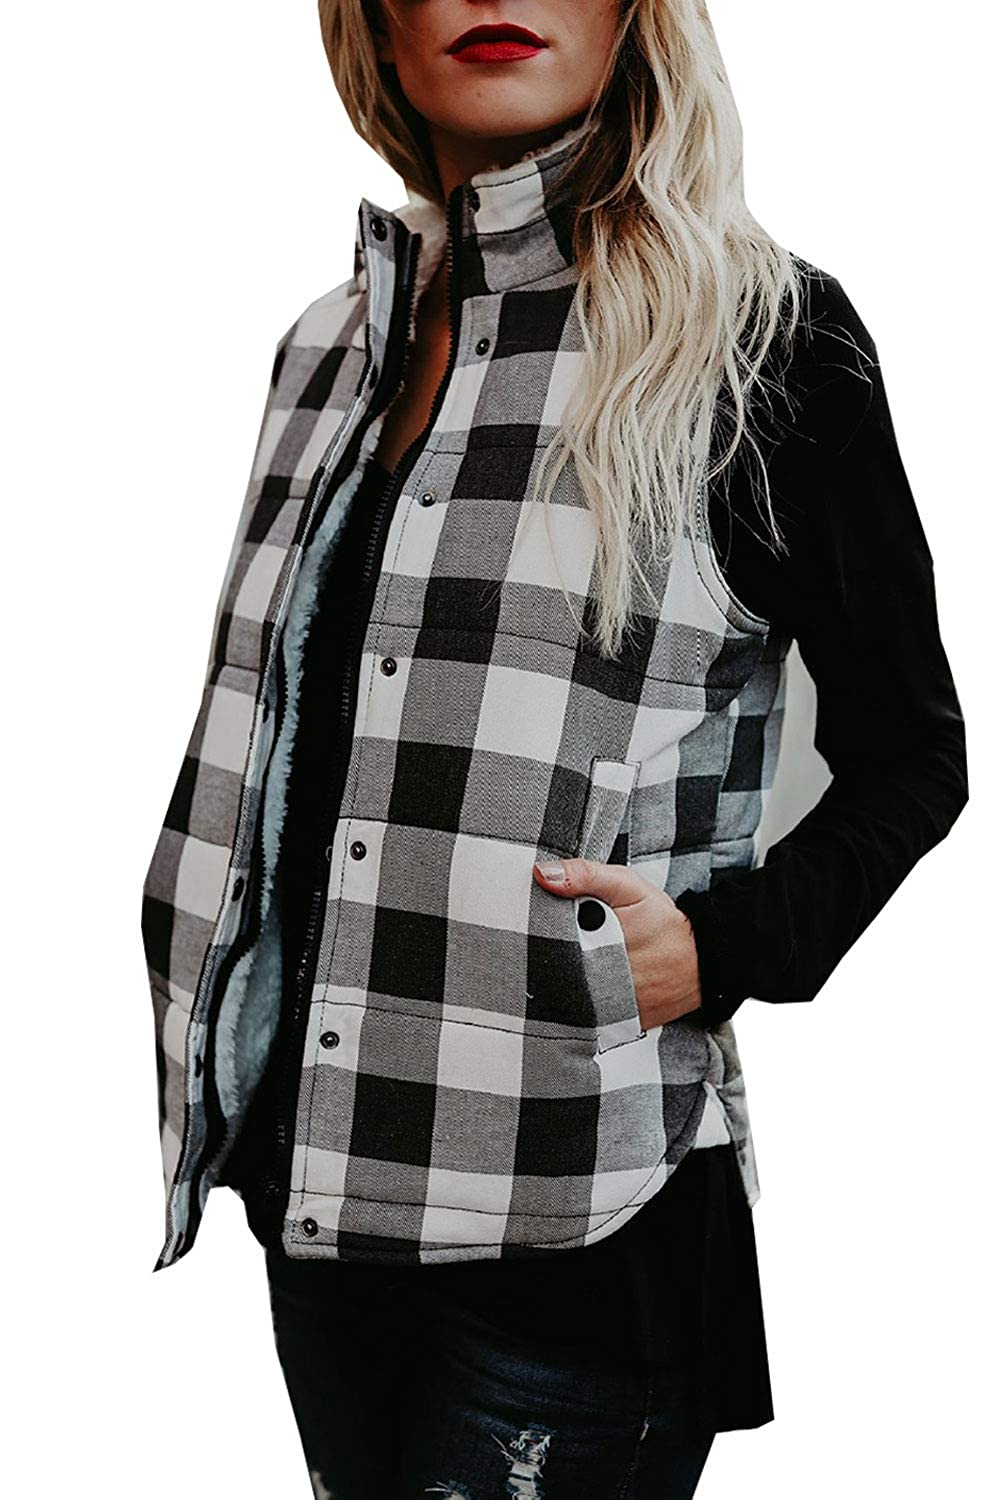 HSRKB Women's Sleeveless Vest Plaid Open Front Cardigan Warm Winter Coat with Pockets